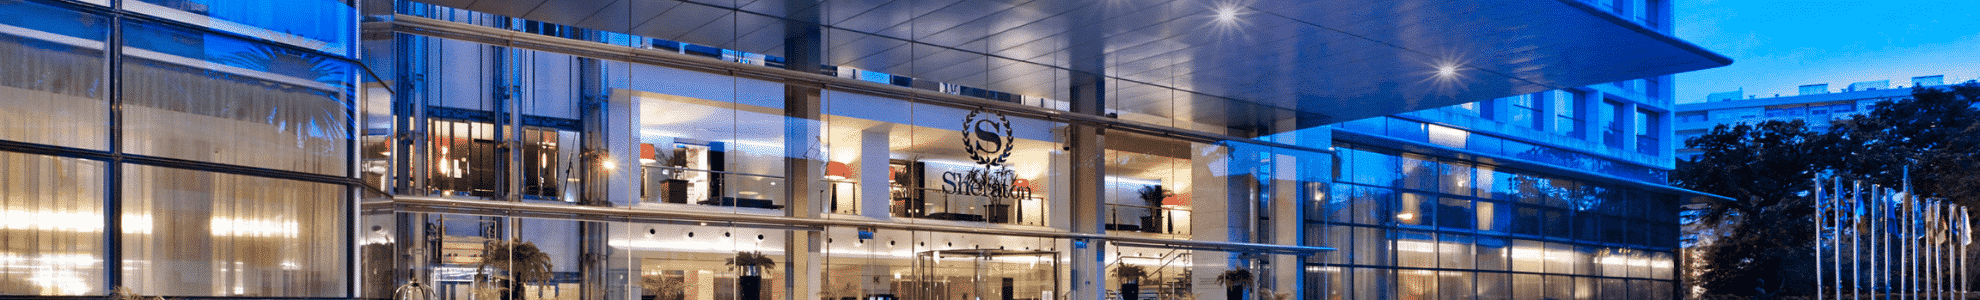 Sheraton Porto decides to implement SISQUAL's workforce management solutions